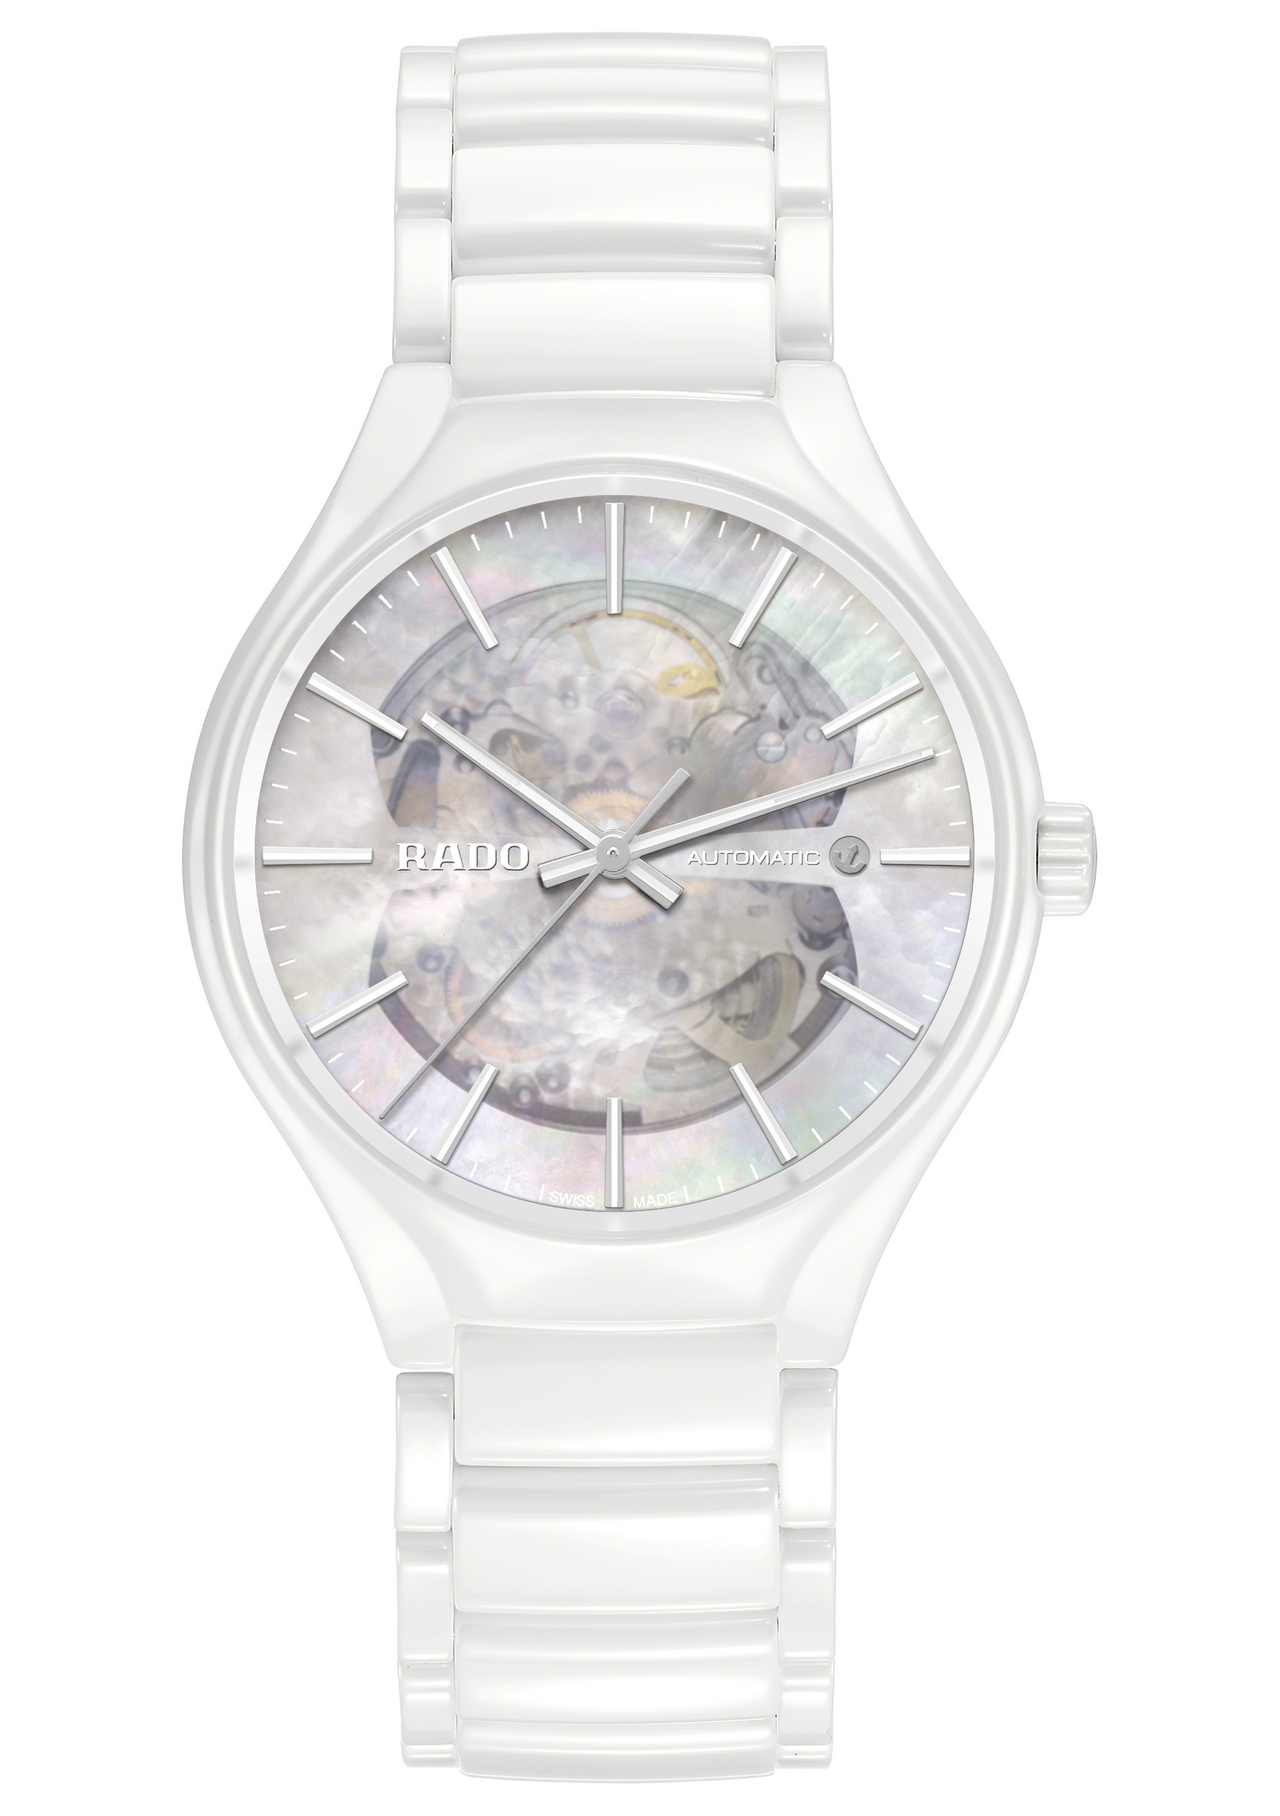 anteprima-baselworld-2016-rado-true-light-ref-734-0106-3-090-ref-734-0101-3-090-prezzo-price_0-10012